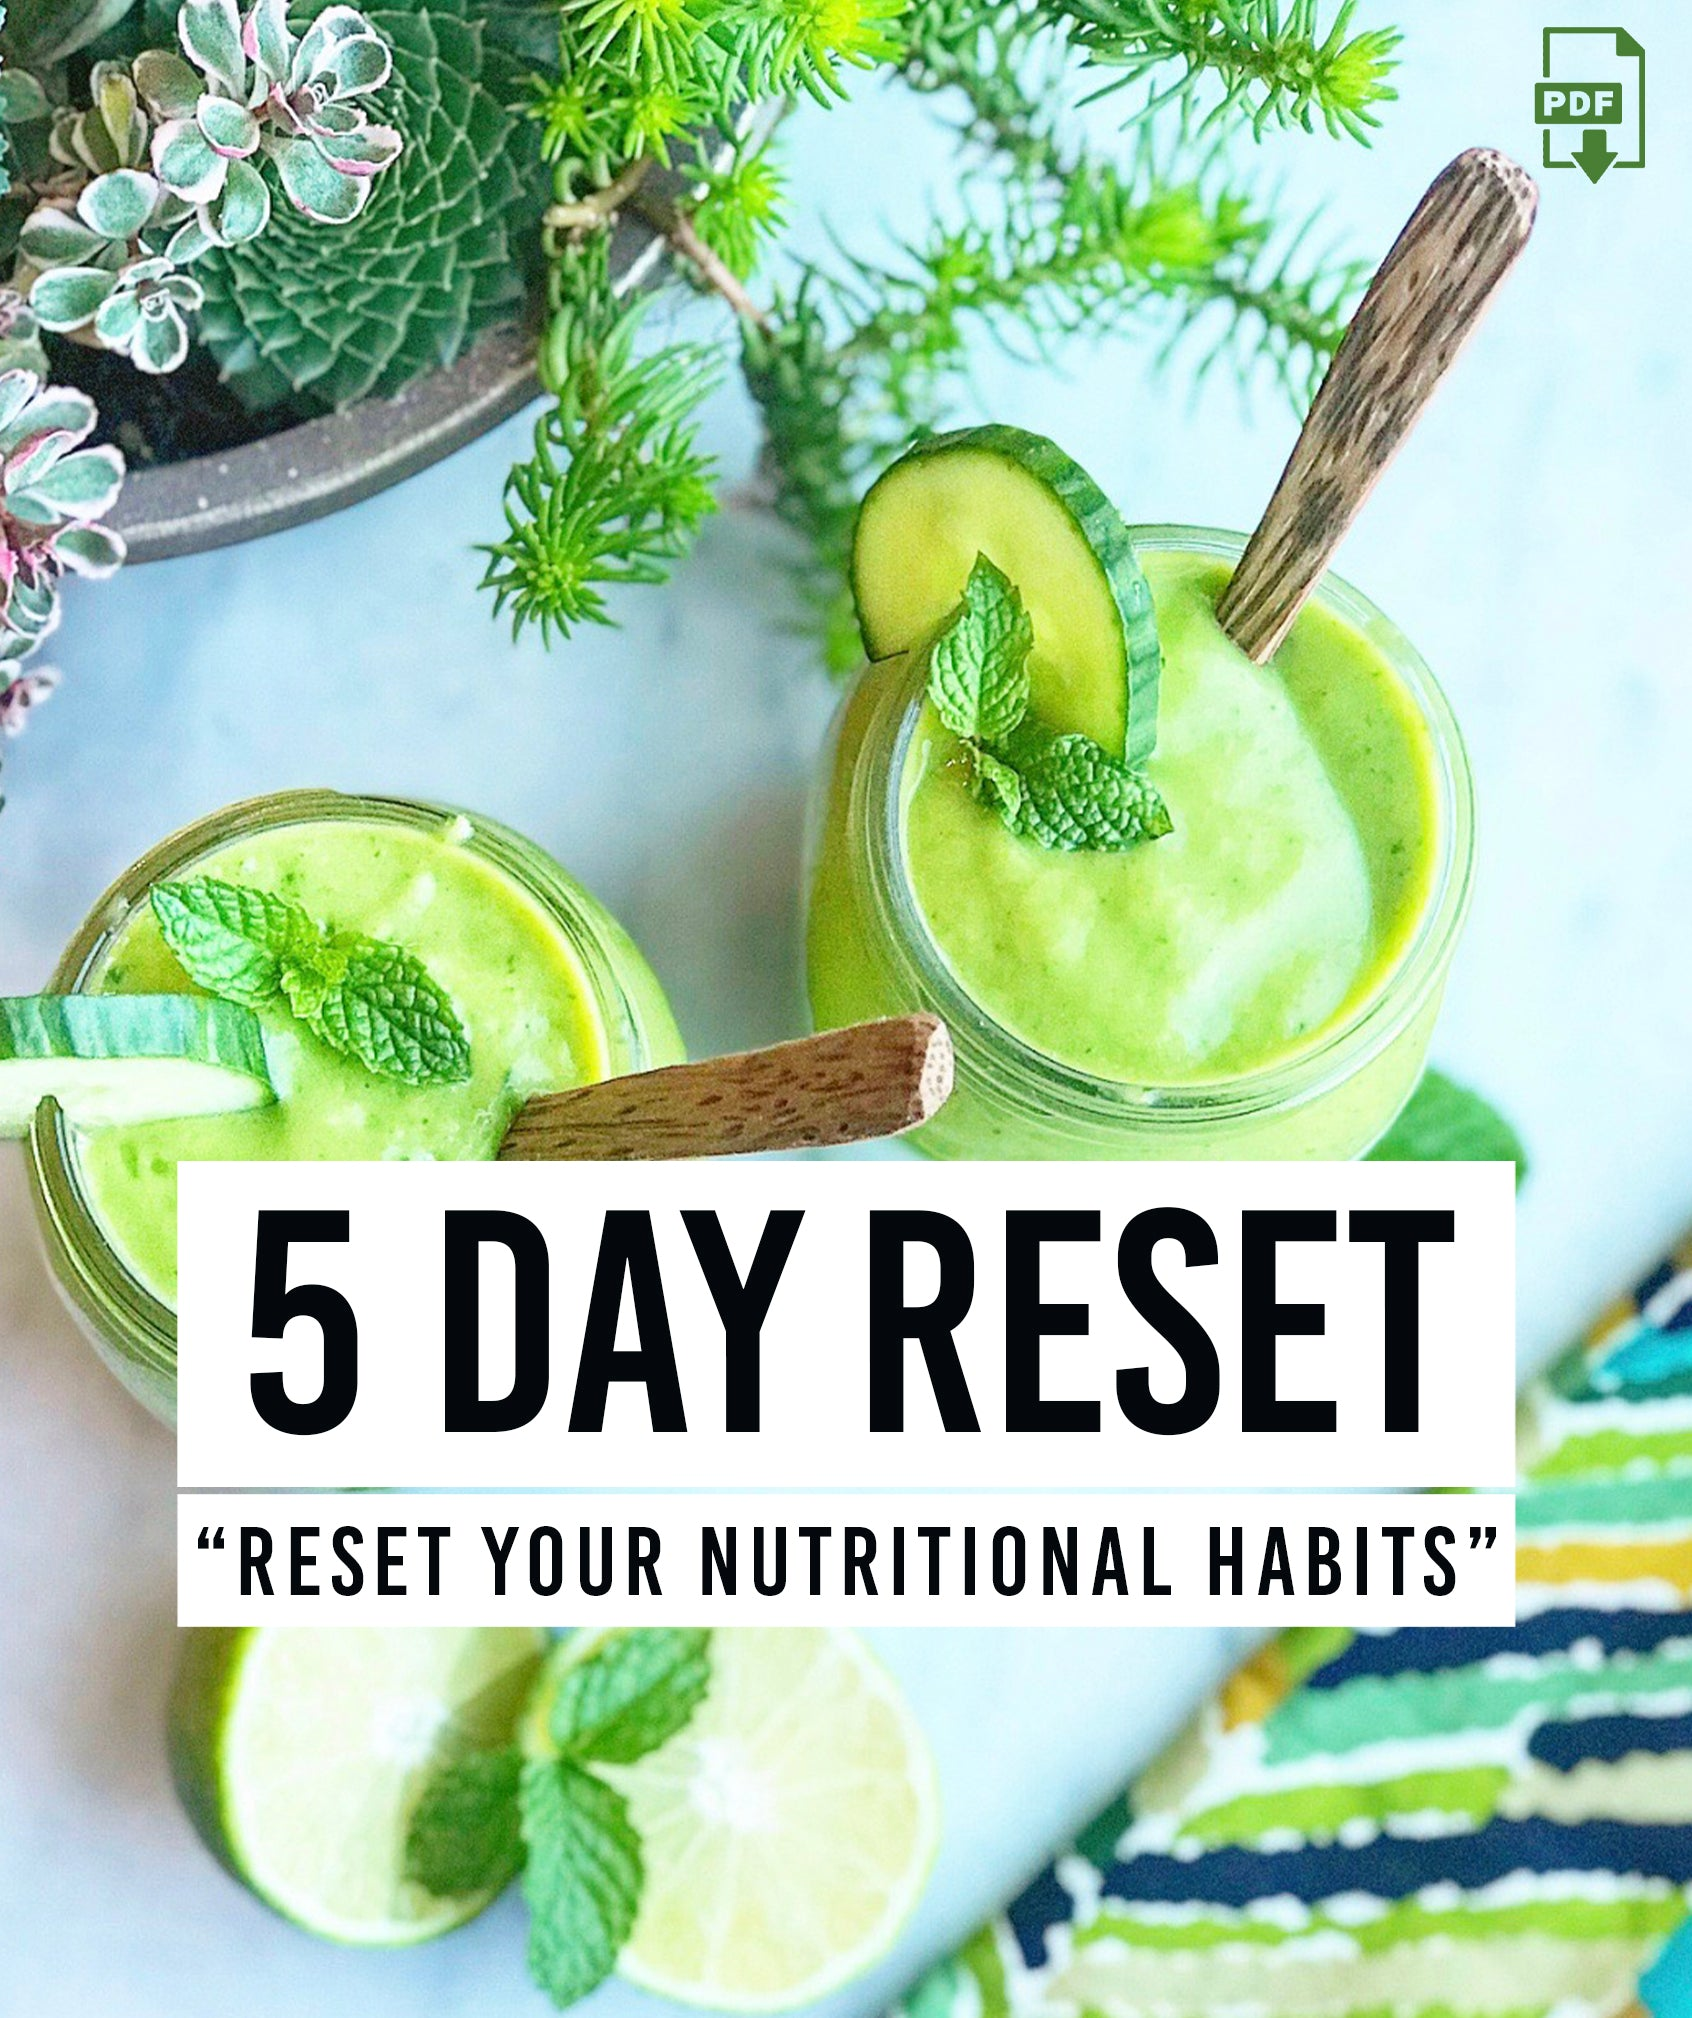 5 DAY RESET PLAN